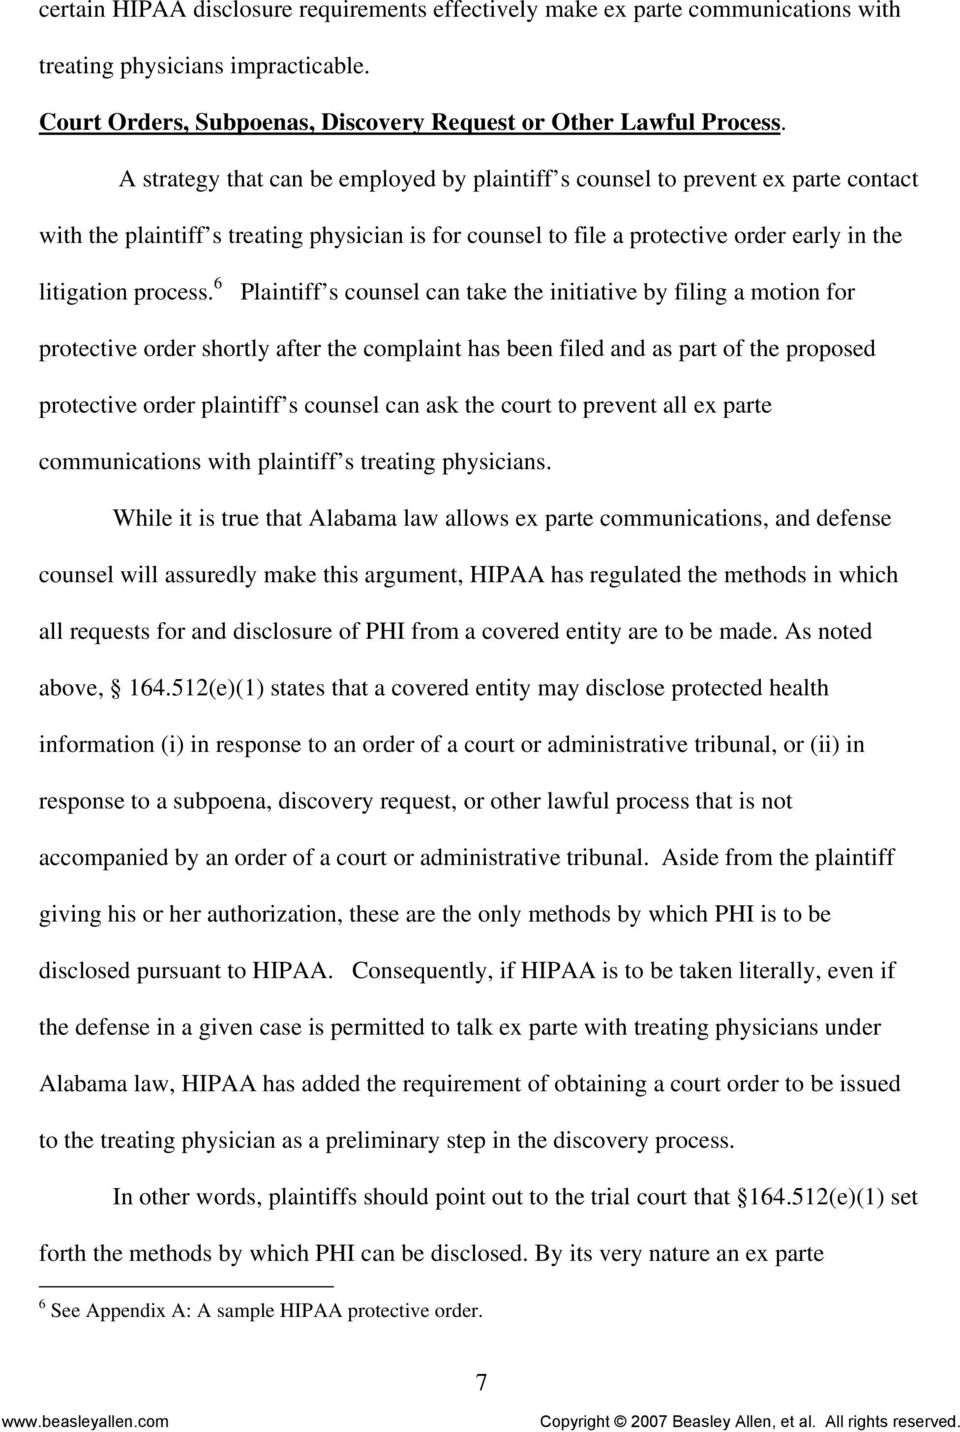 6 Plaintiff s counsel can take the initiative by filing a motion for protective order shortly after the complaint has been filed and as part of the proposed protective order plaintiff s counsel can